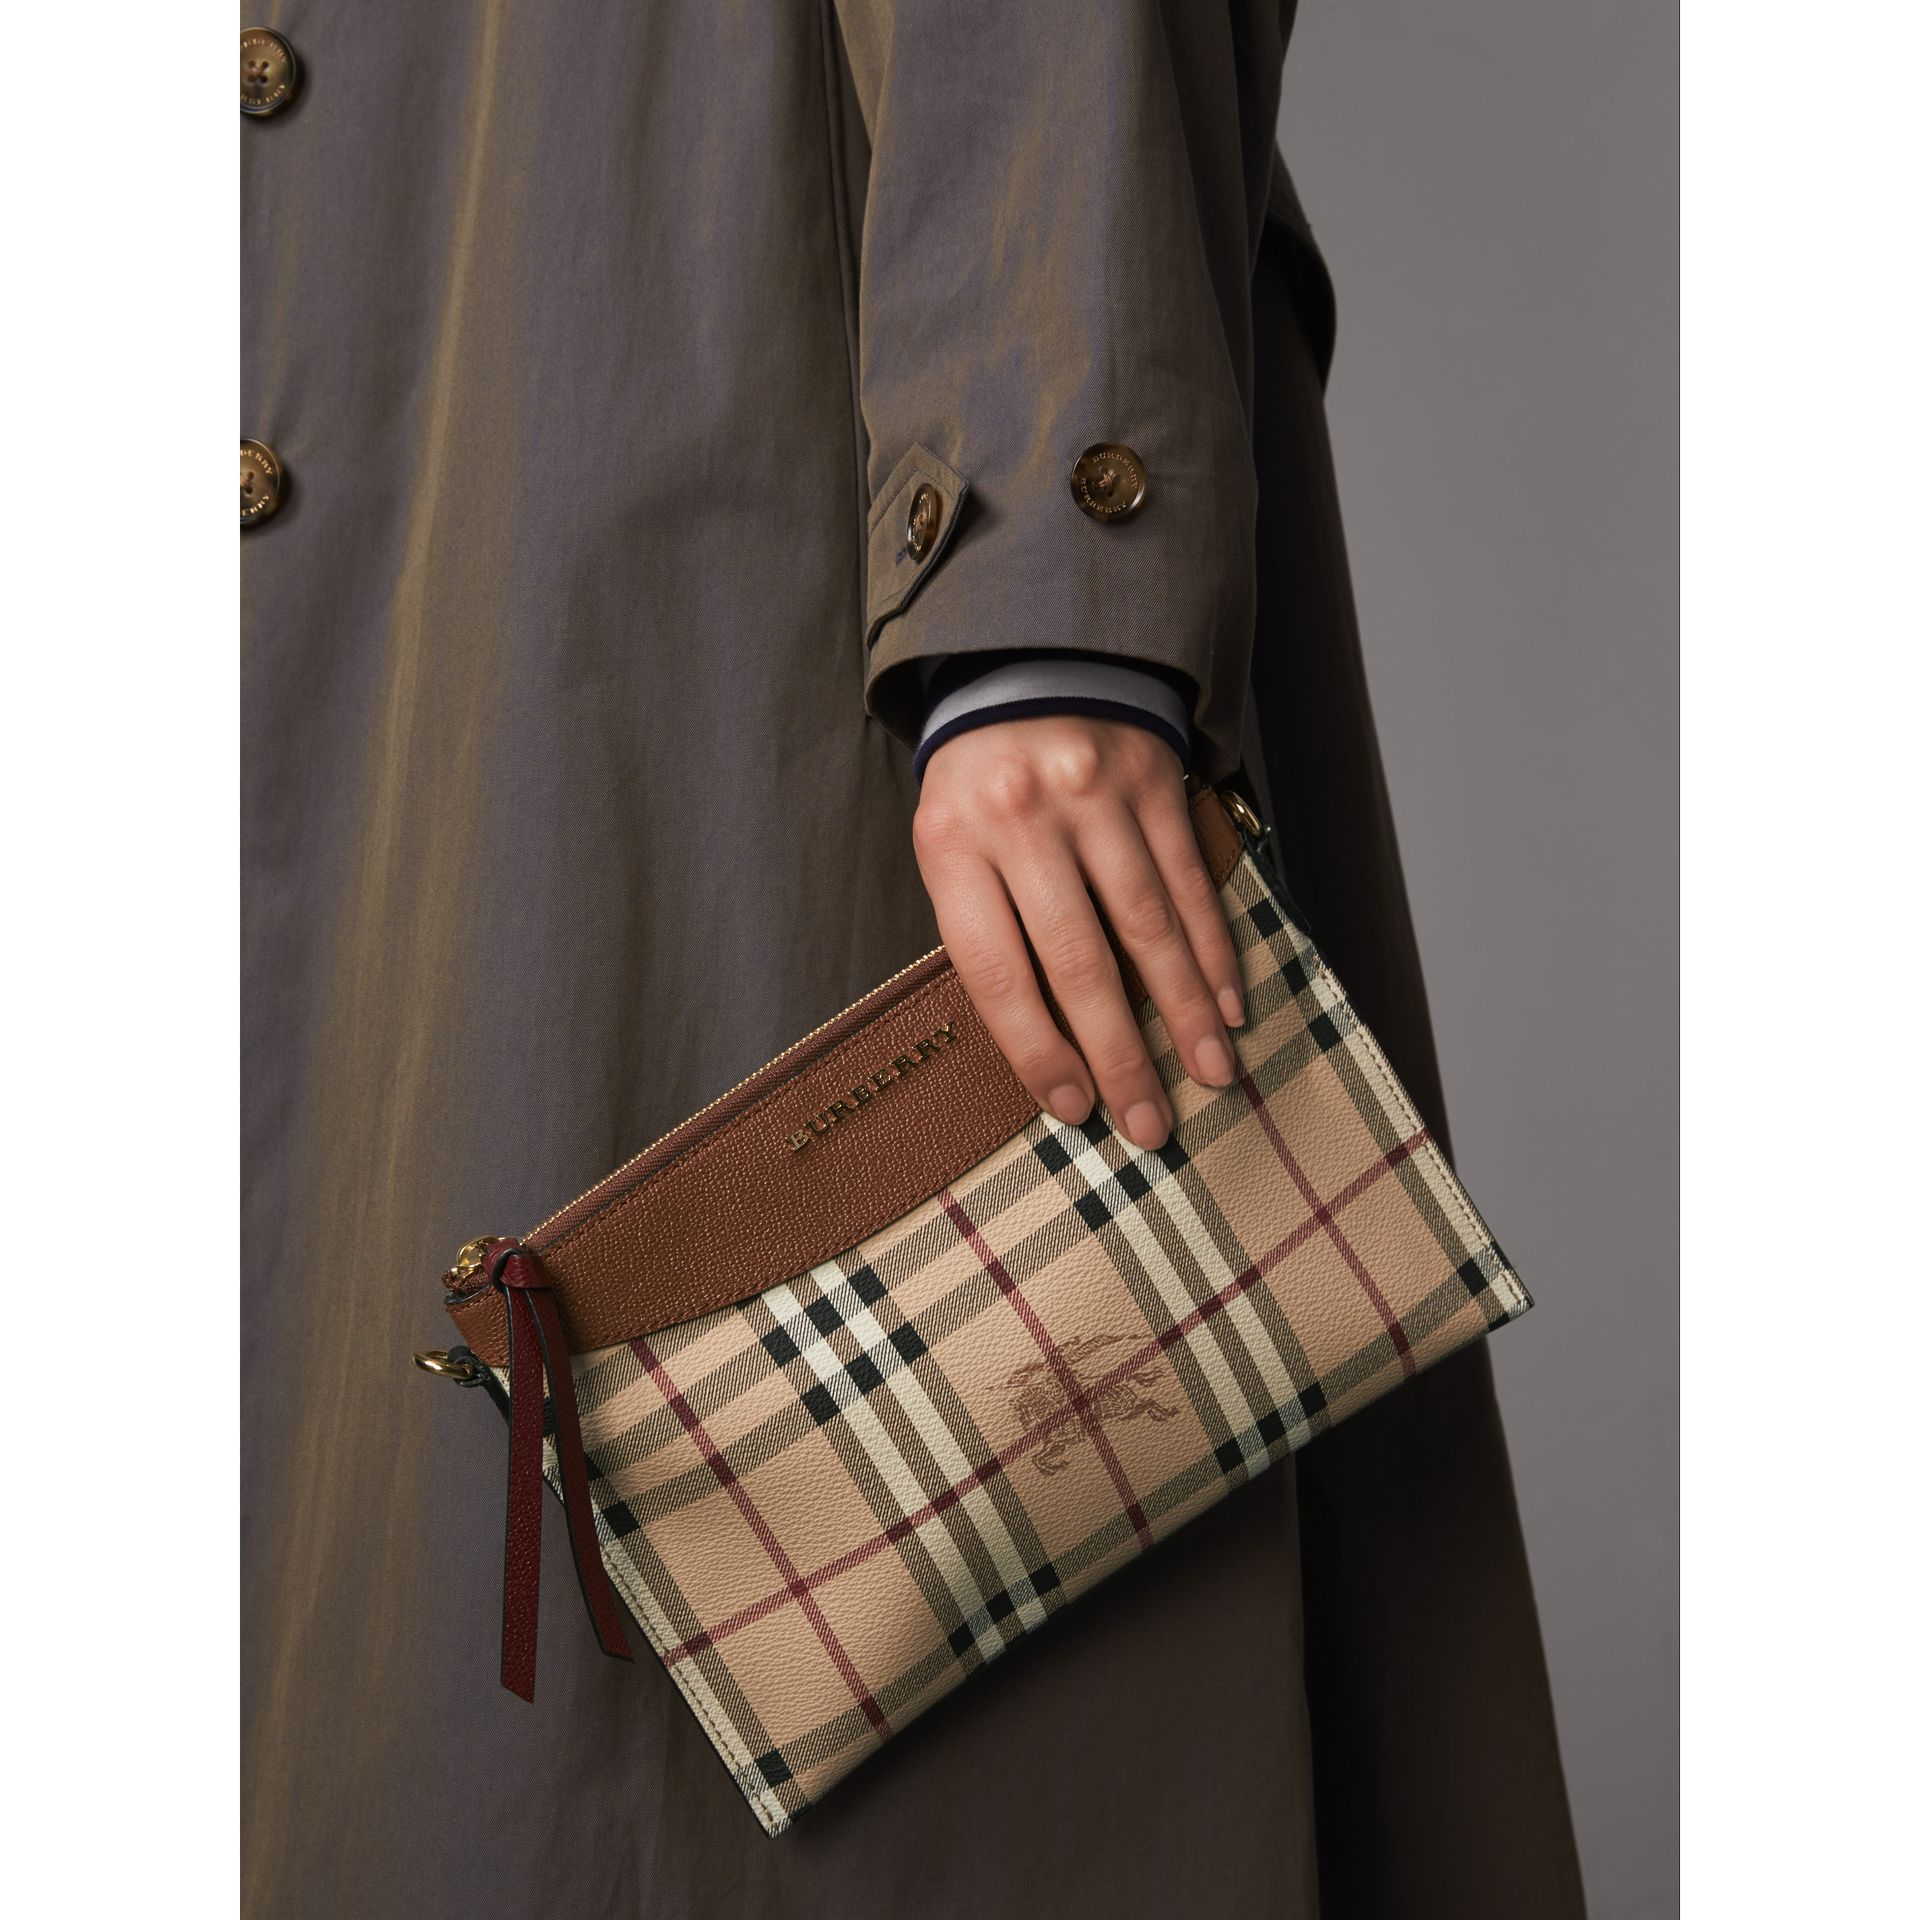 Haymarket Check and Two-tone Leather Clutch Bag in Bright Toffee/ Multicolour - Women | Burberry - gallery image 3